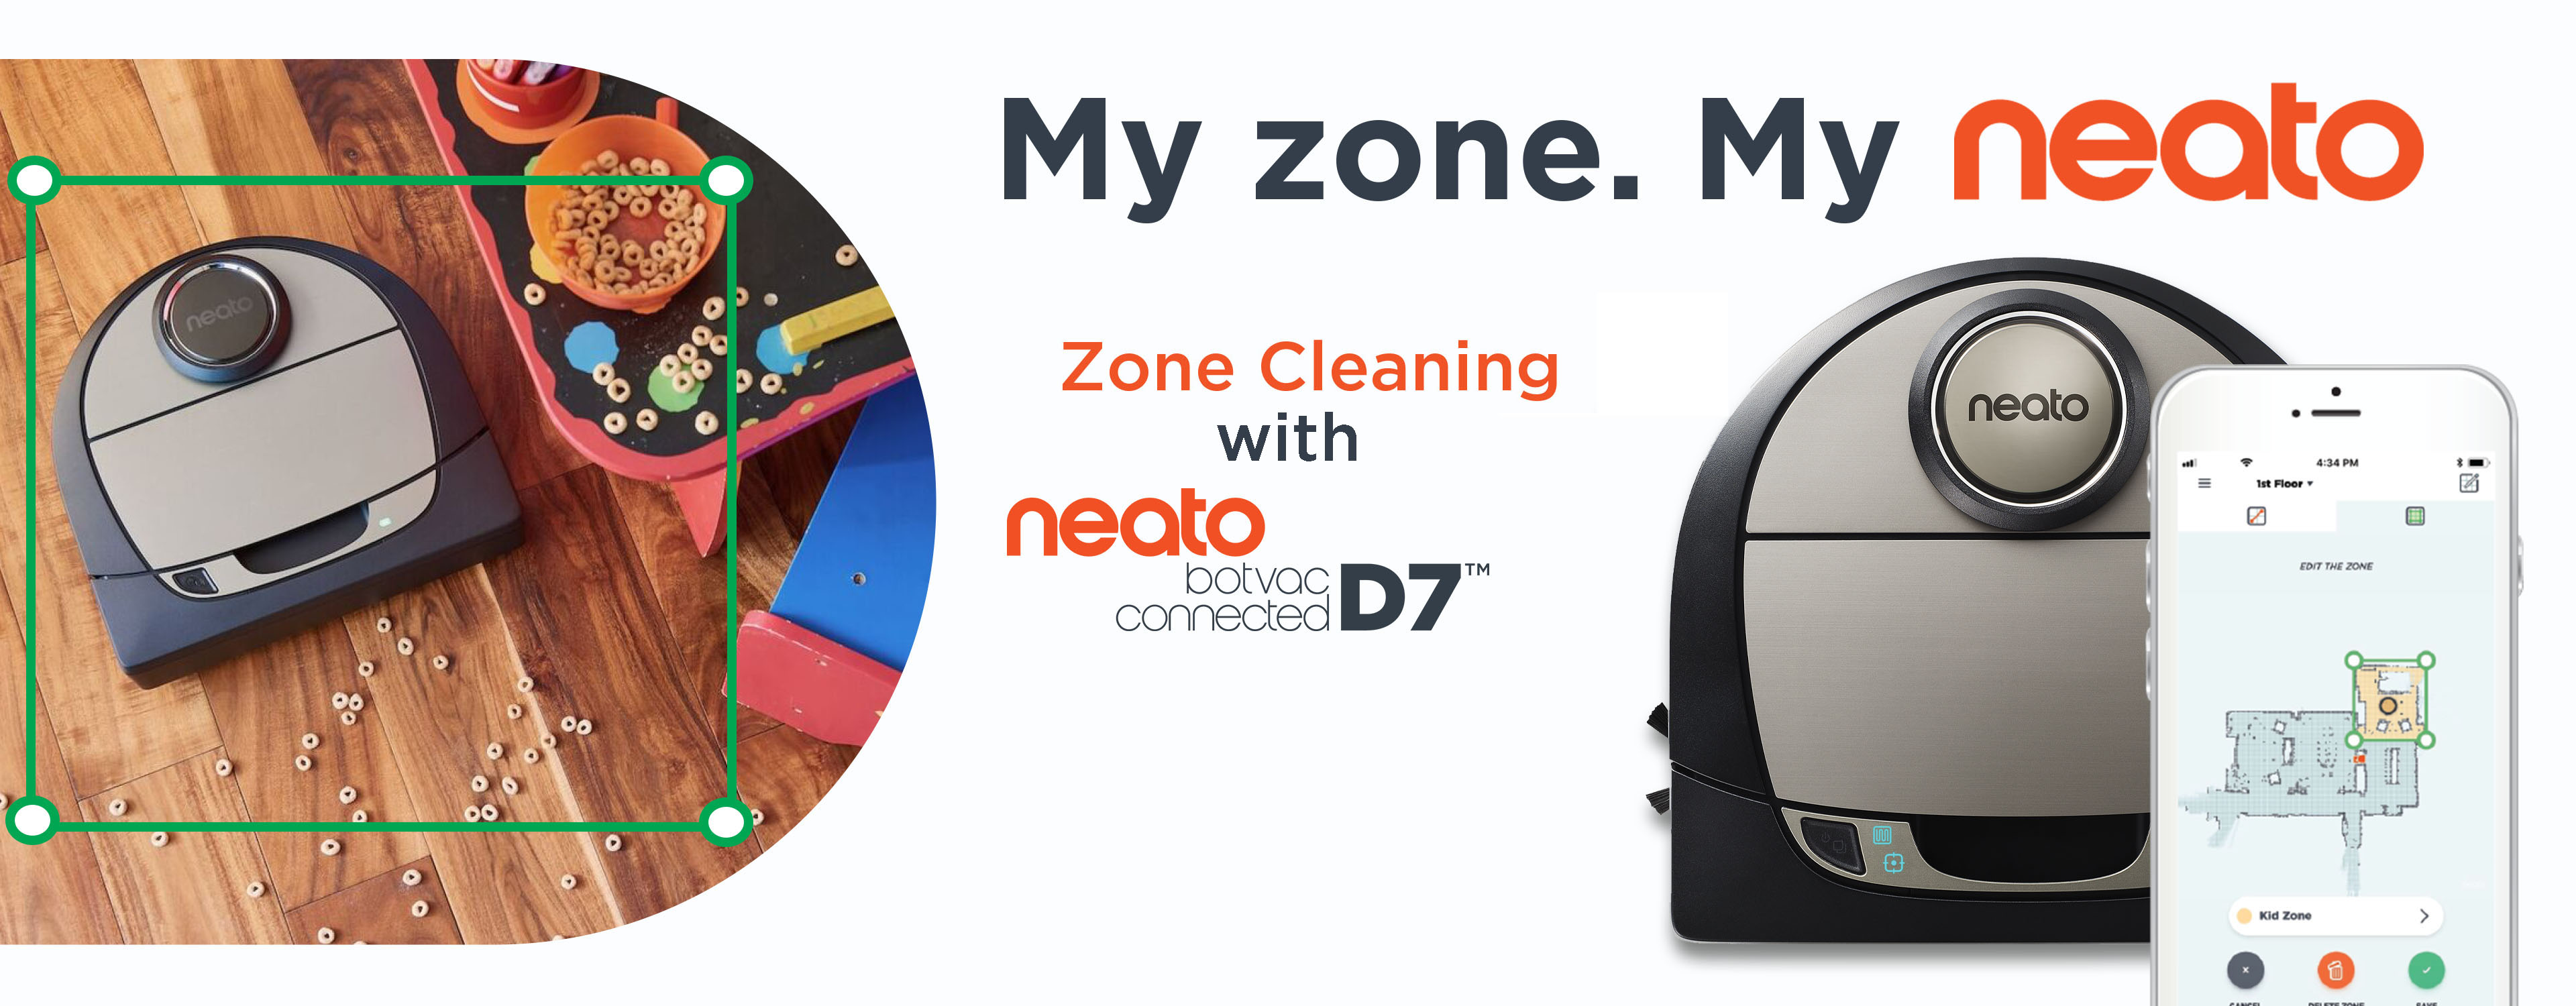 Neato Botvac D7 Connected now with Zone Cleaning